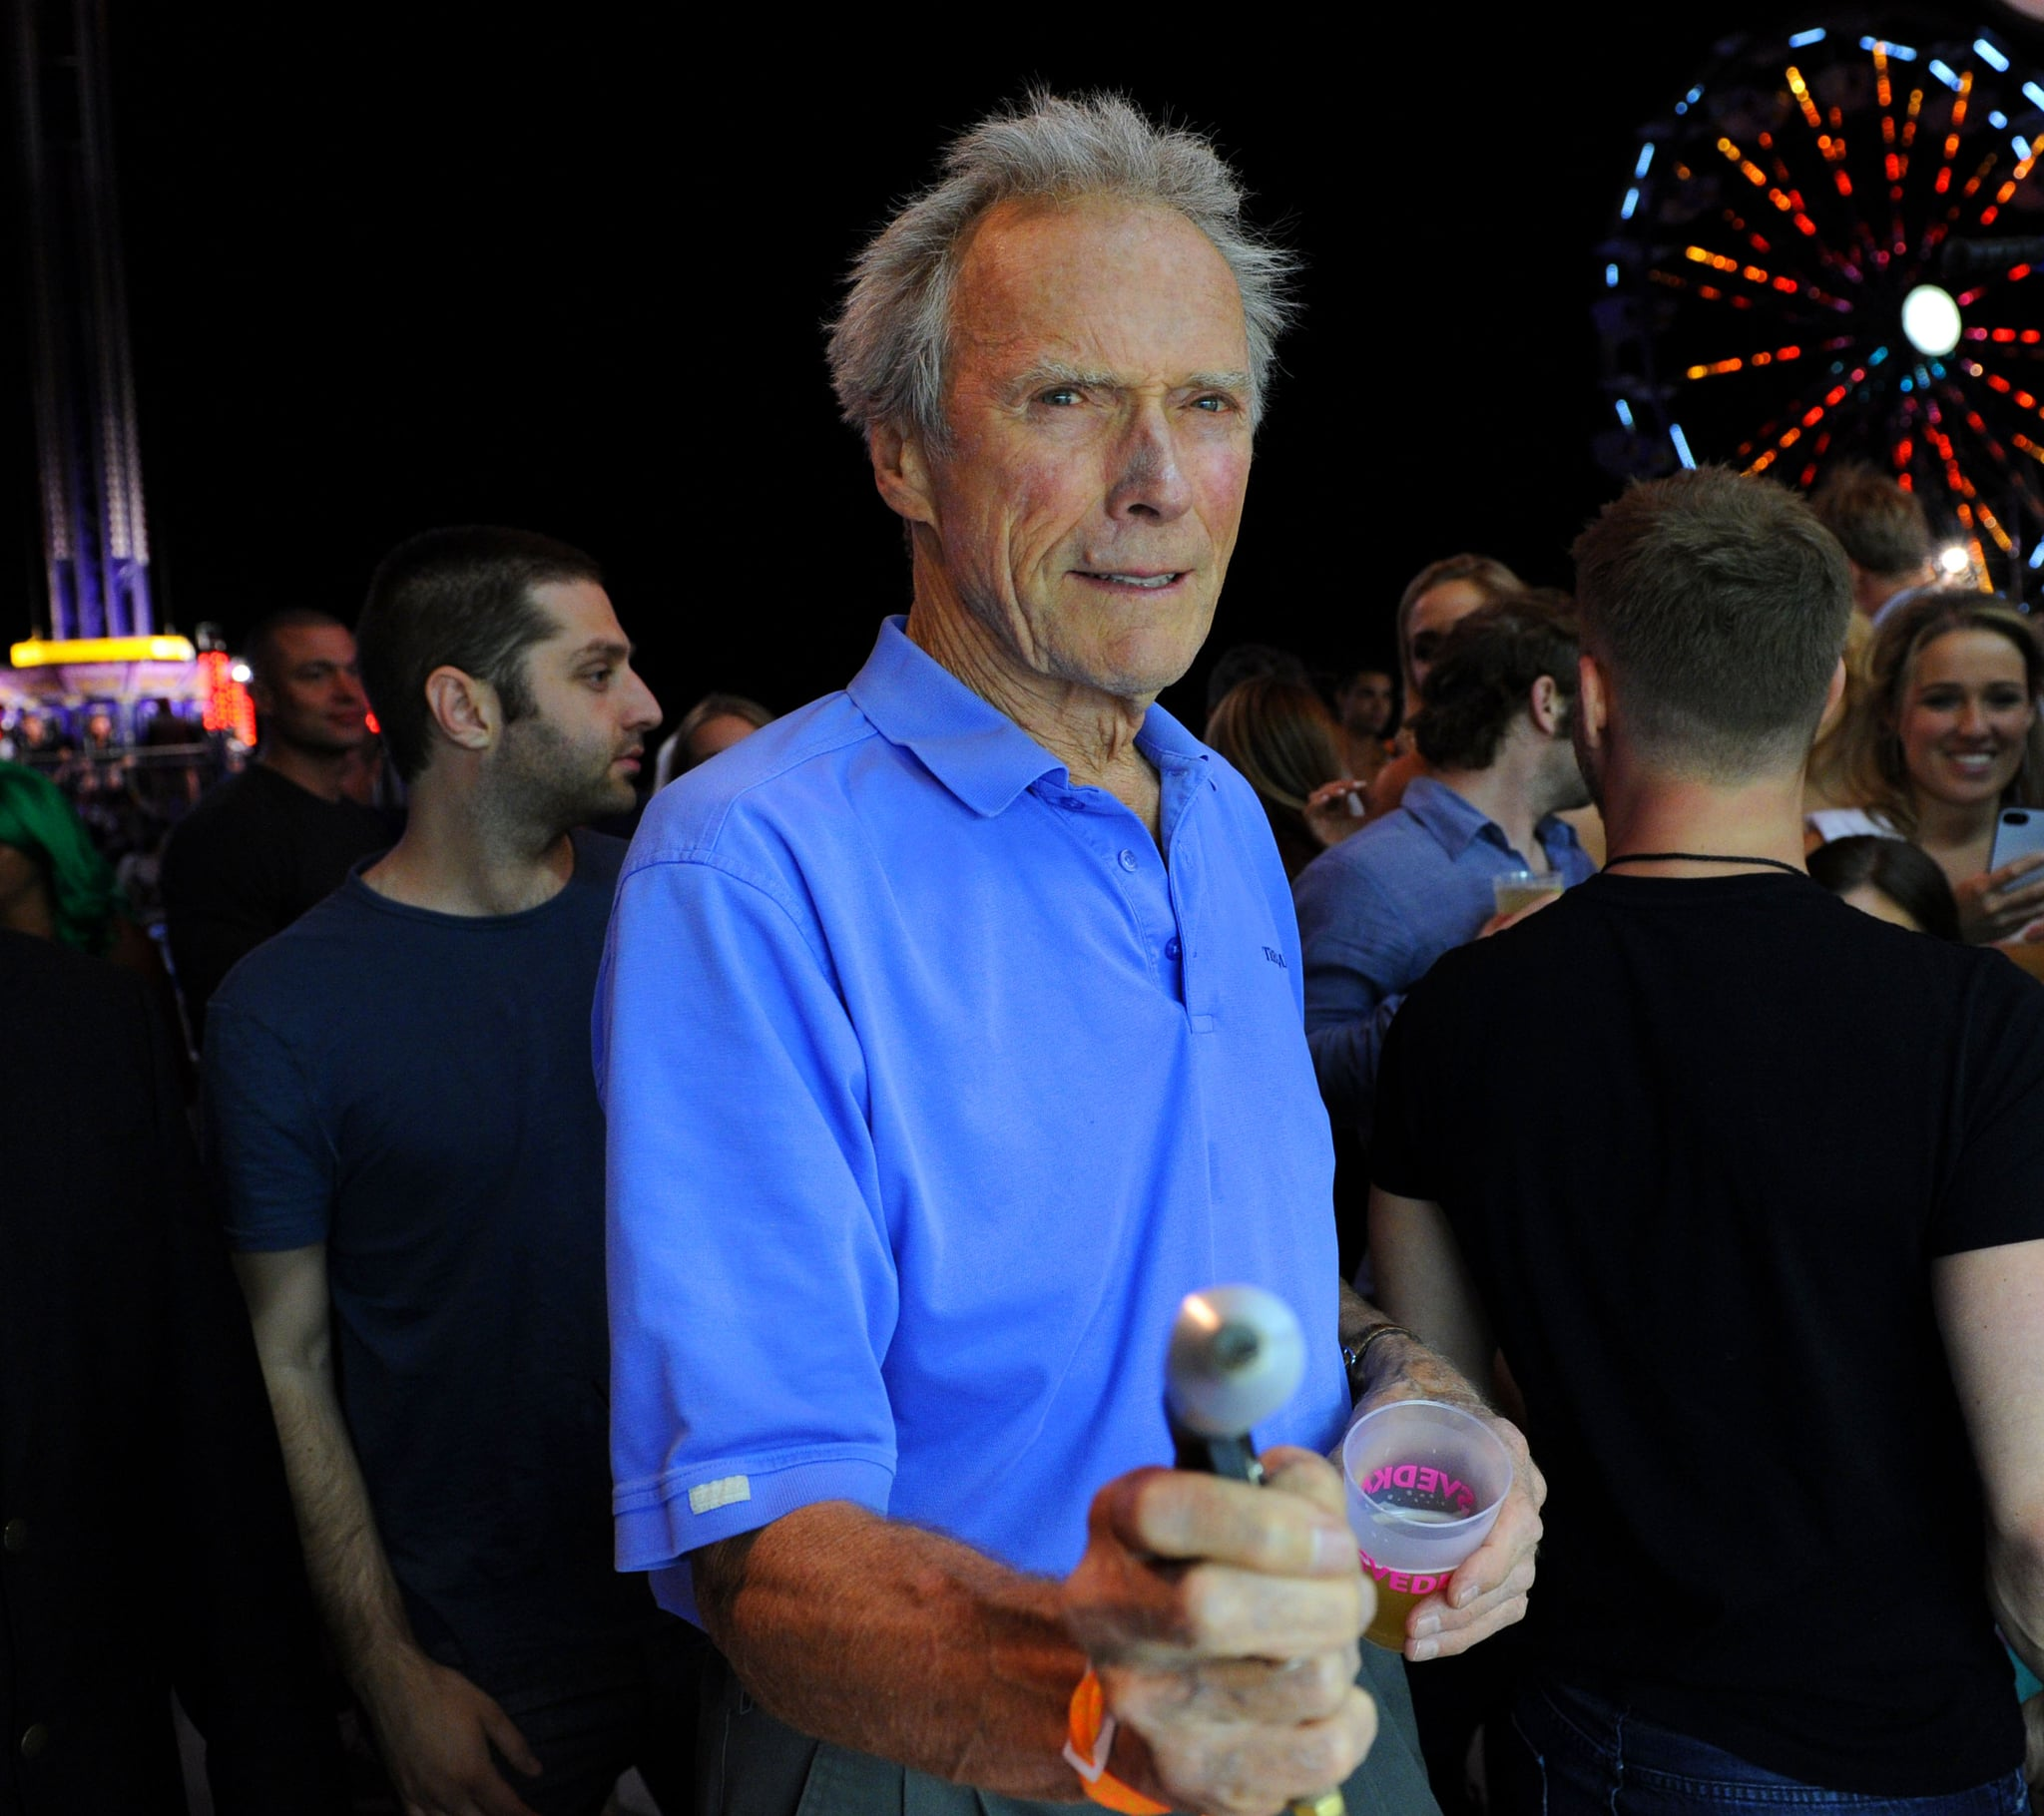 In 2013, Clint Eastwood played carnival games at Coachella's Neon Carnival. Photo courtesy of Seth Browarnik/WorldRedEye.com